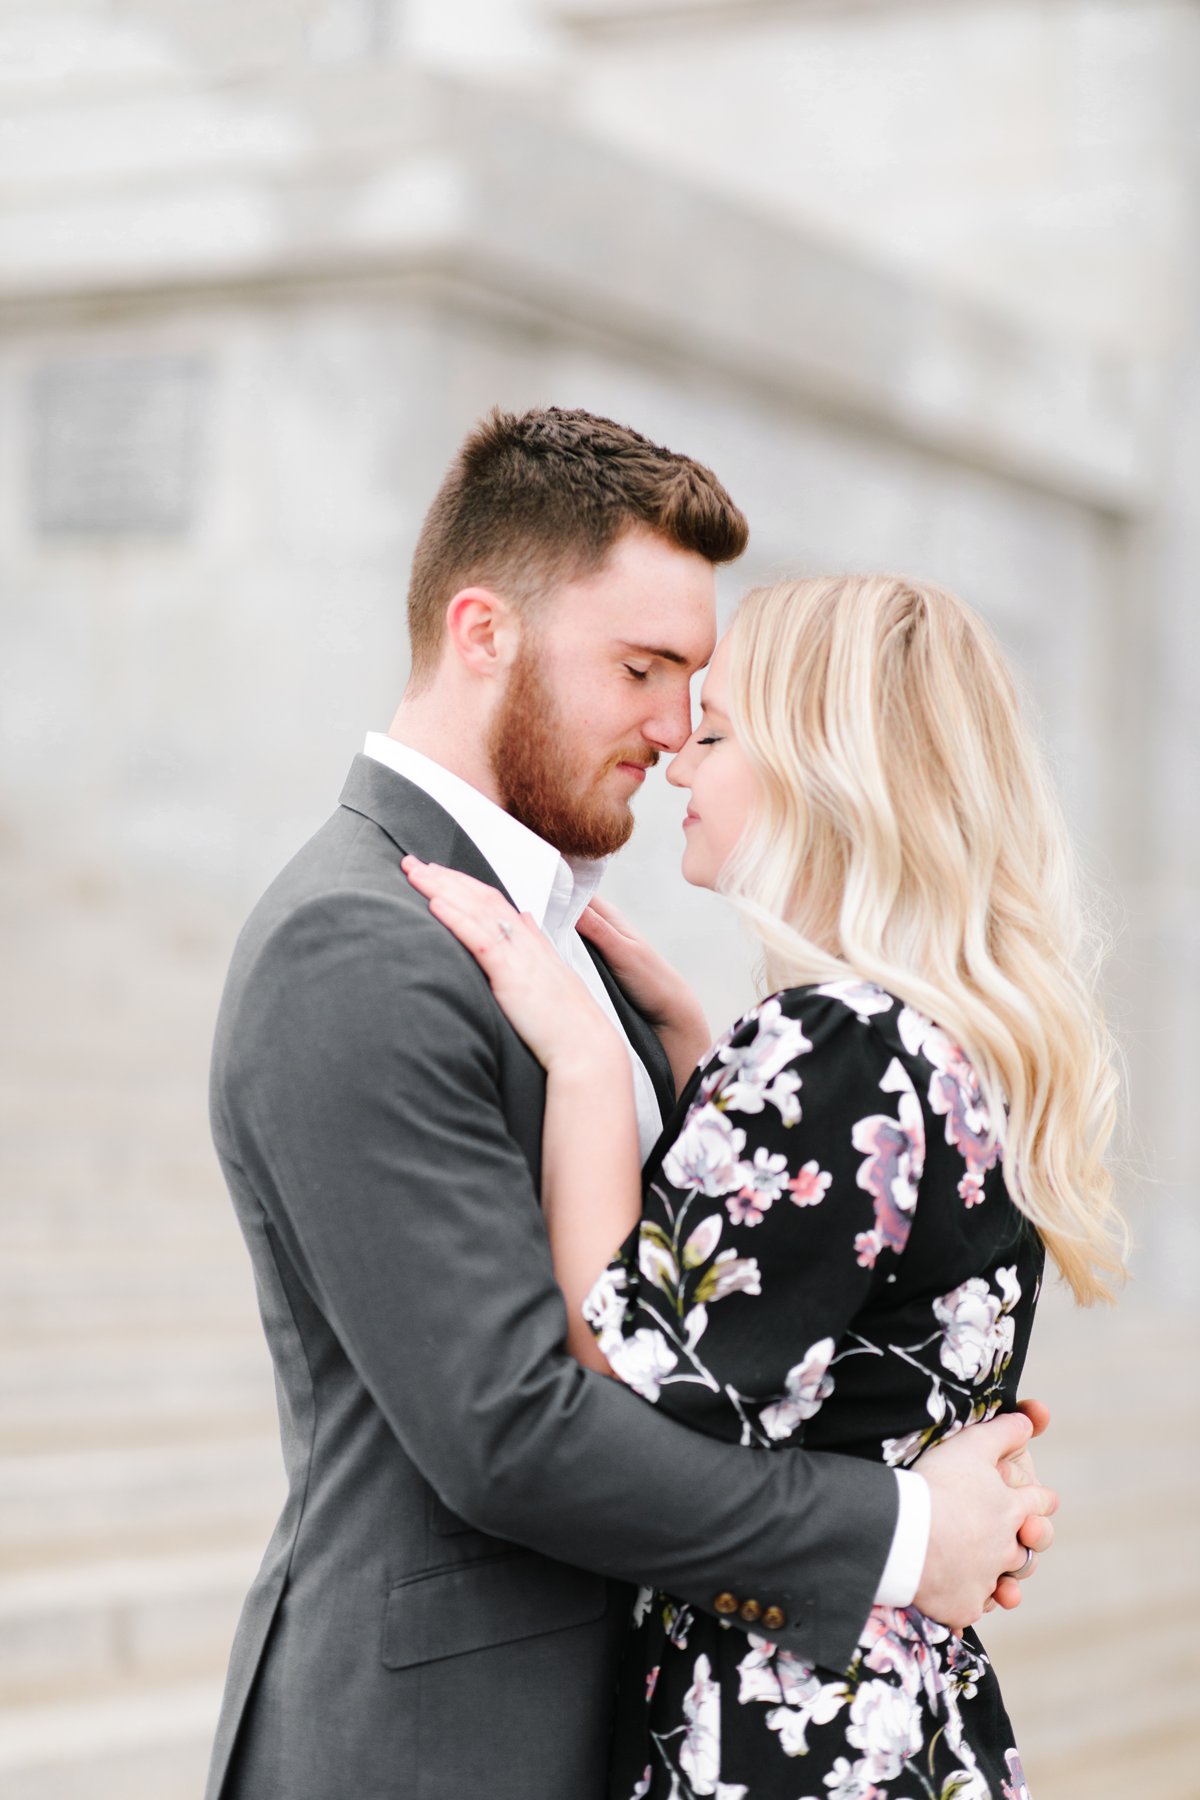 romantic intimate engagement photography session urban hands on chest holding close touching foreheads salt lake city capitol building utah valley engagement photographer #saltlakecitycapitolbuilding #engaged #utahvalleyengagementphotography #saltlakecityengagementphotographer #isaidyes #weddinginspo #engagementphotos #utah ##outfitinspo #fiance